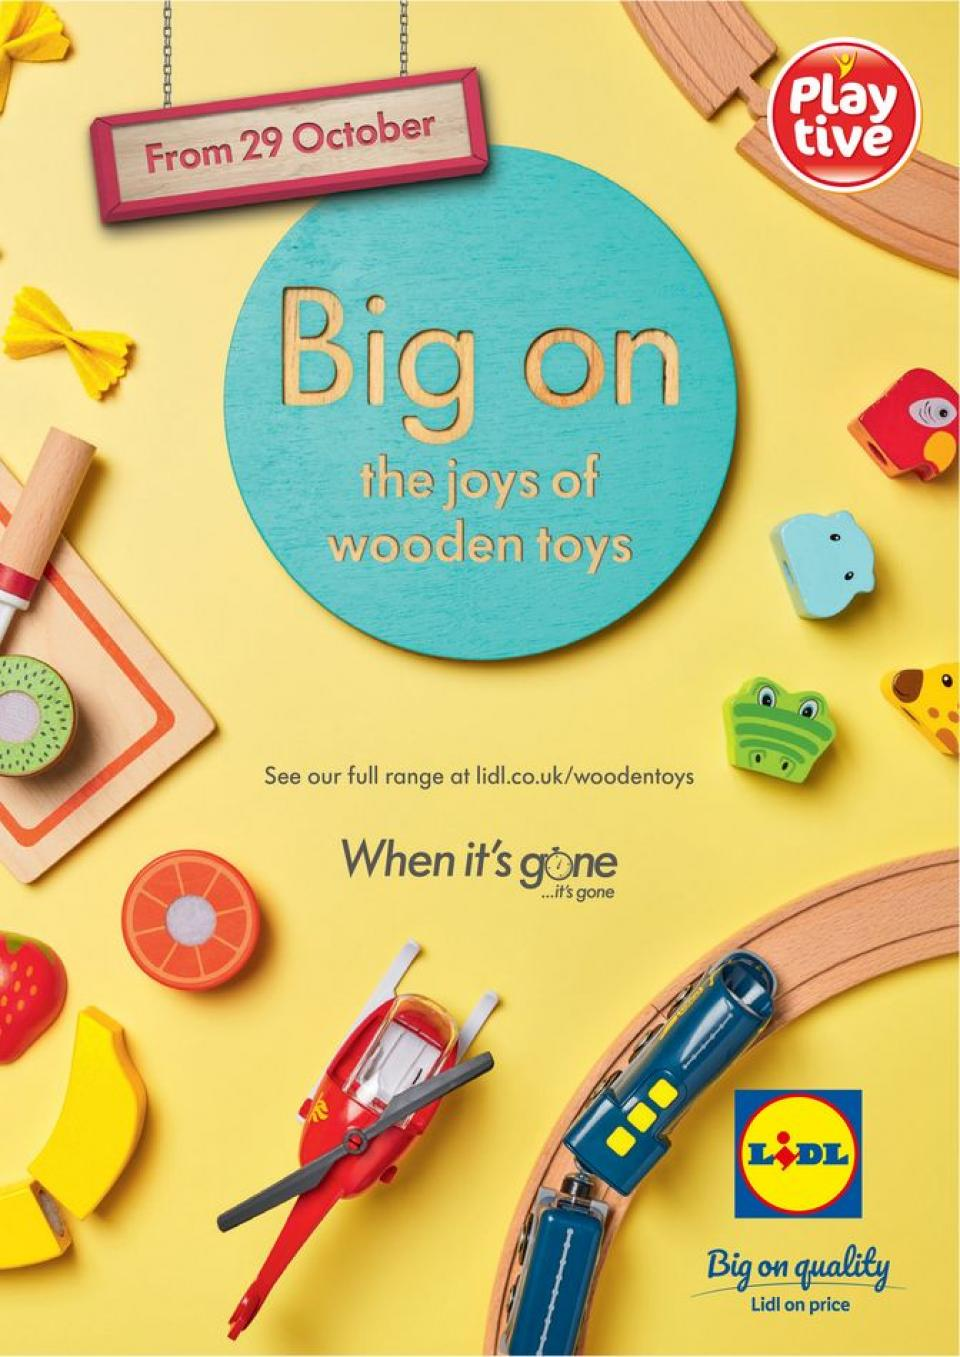 lidl offers wooden toys 22 october 2020